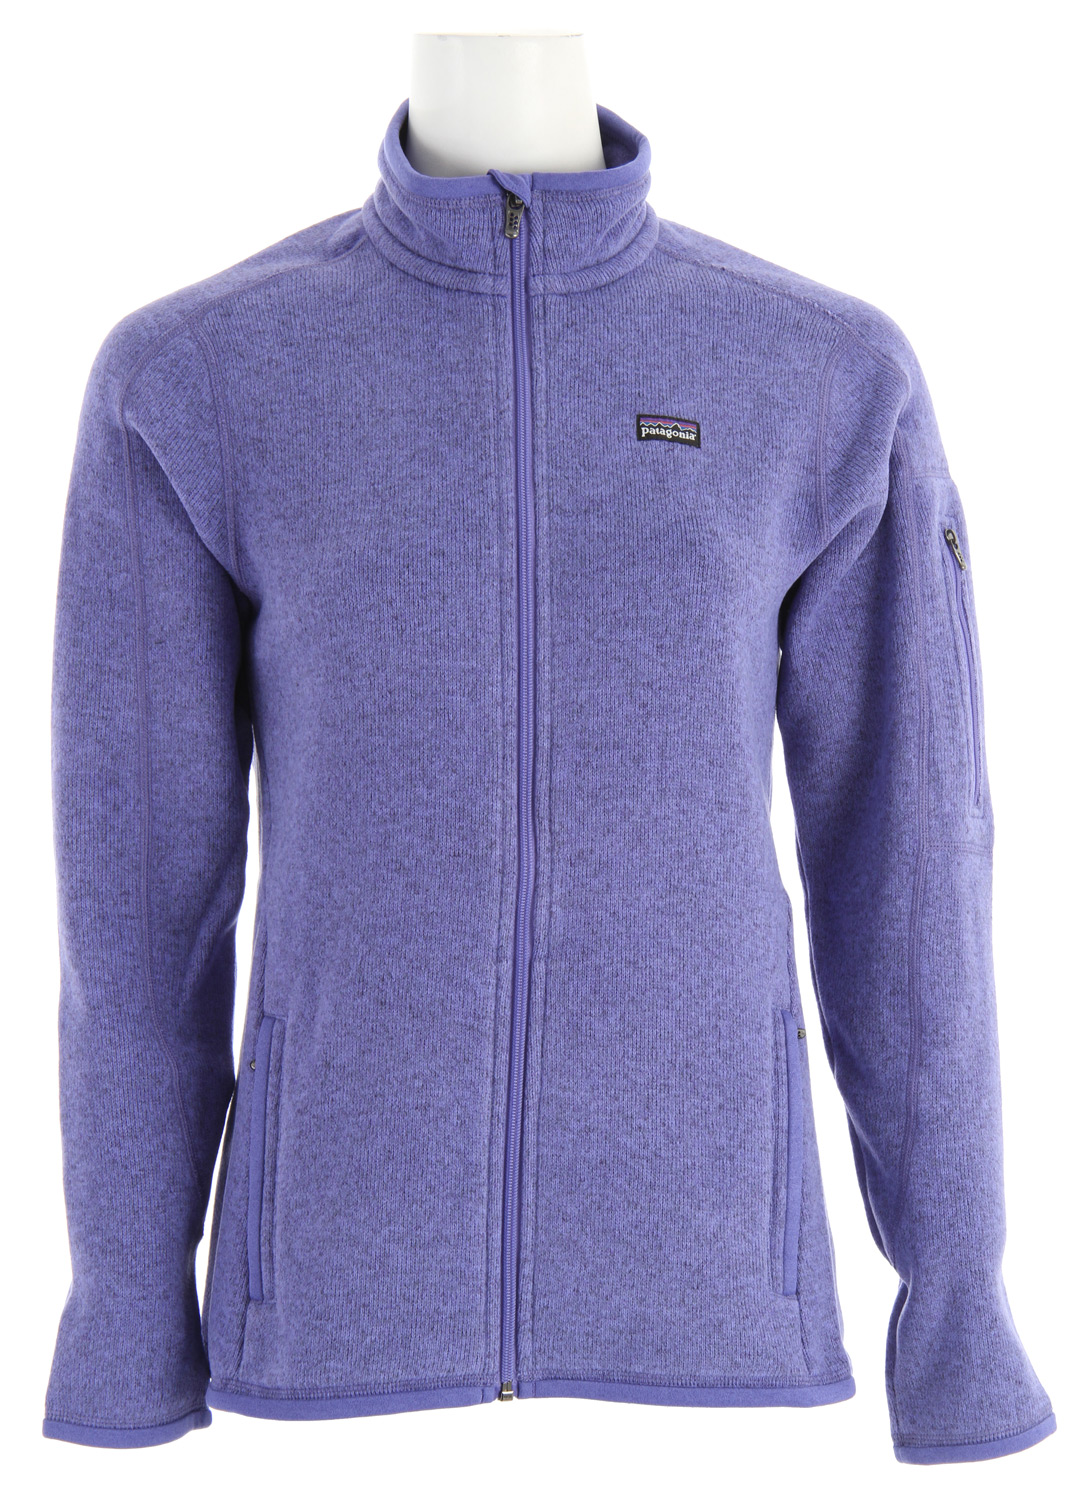 Warm polyester fleece meets your favorite sweater in the Better Sweater Jacket. fabric: 9.5-oz 100% polyester with sweater-knit exterior and fleece interiorKey Features of the Patagonia Better Sweater Jacket Hydrangea/Deep Purple Xdye: Fabric has a sweater-knit face, fleece interior and heathered, overdye yarns with a knit-like texture Front zipper has a wind flap and a zipper garage Zippered handwarmer pockets; interior drop-in pockets Micro polyester jersey fabric trims the wind flap, pockets, cuffs and hem Hip length - $129.00